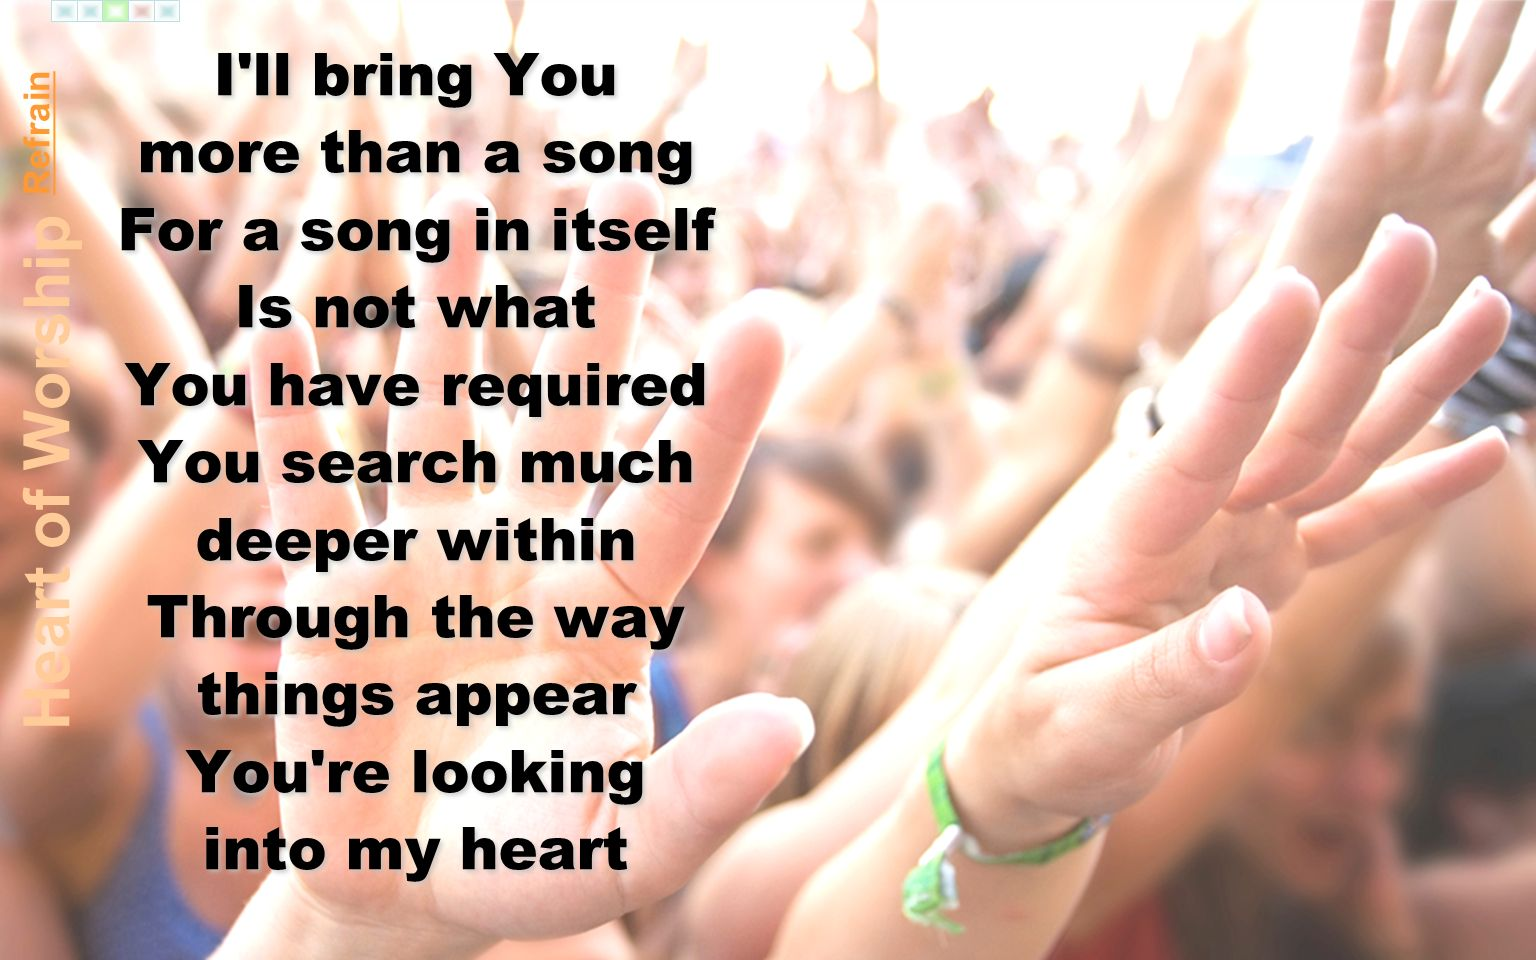 Heart of Worship I ll bring You more than a song For a song in itself